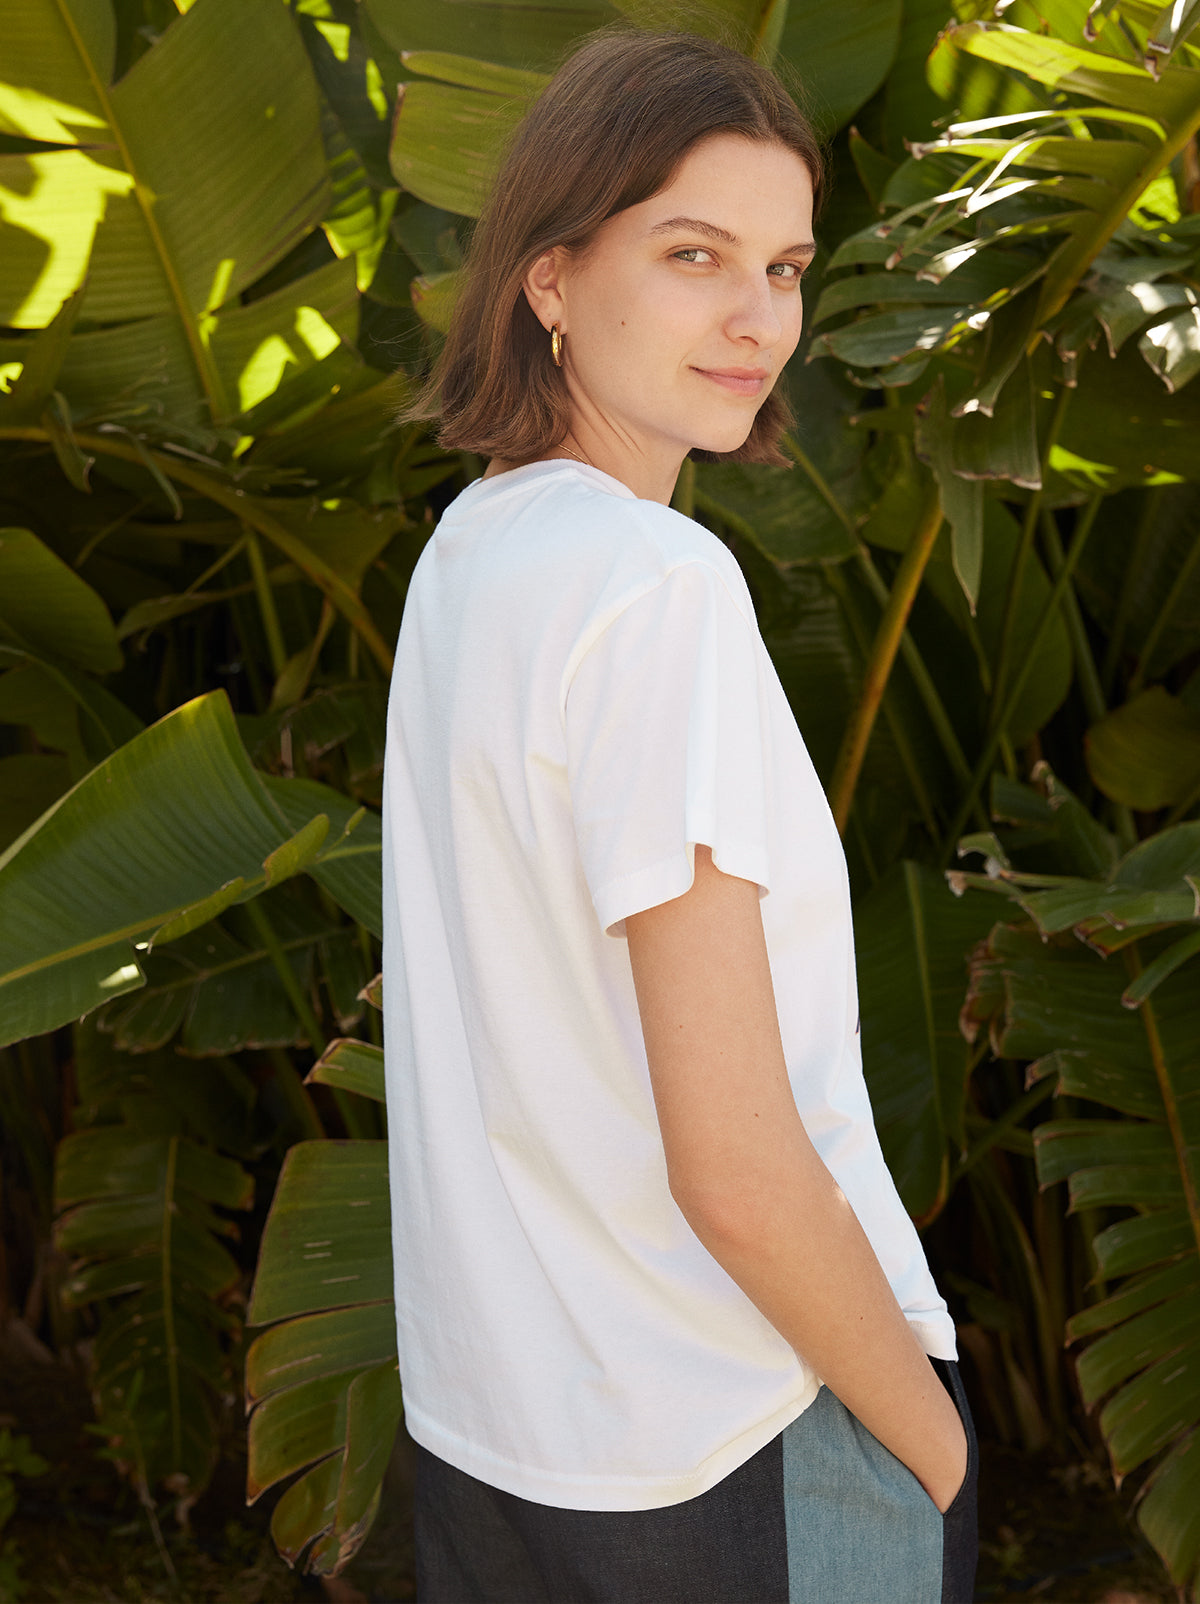 Fiesta White Cotton Print T-shirt by KITRI Studio